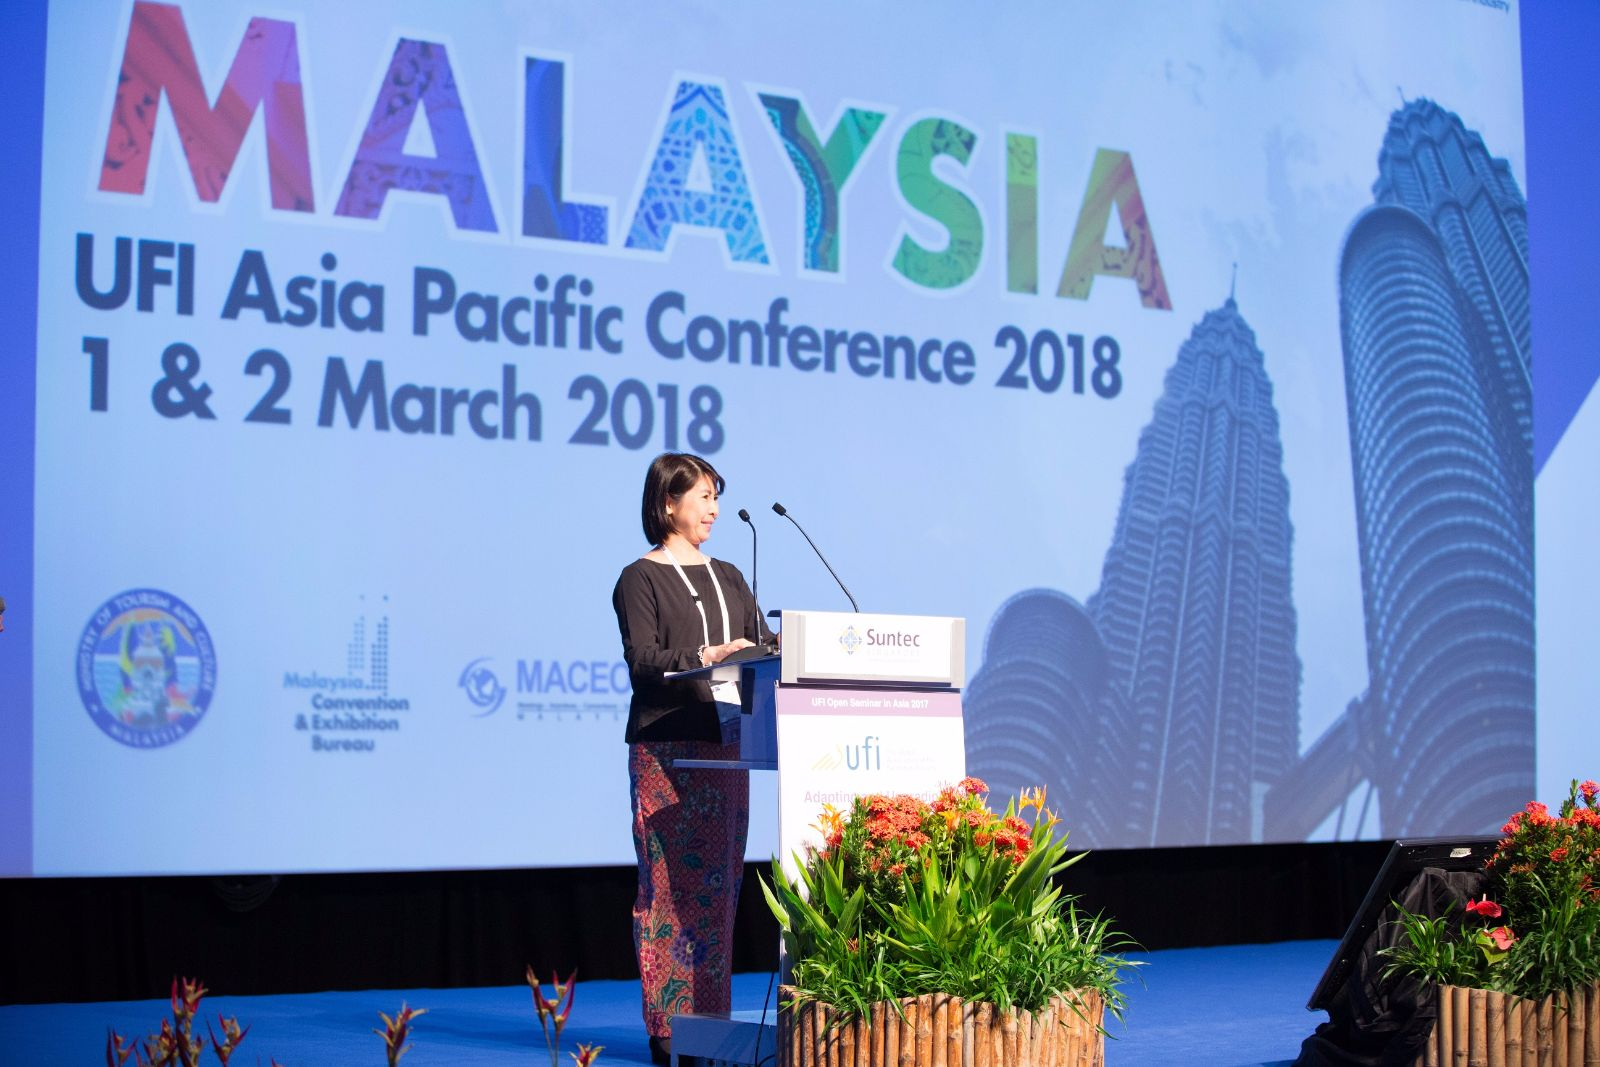 UFI Asia-Pacific Conference (Open Seminar) 2017 – UFI The Global